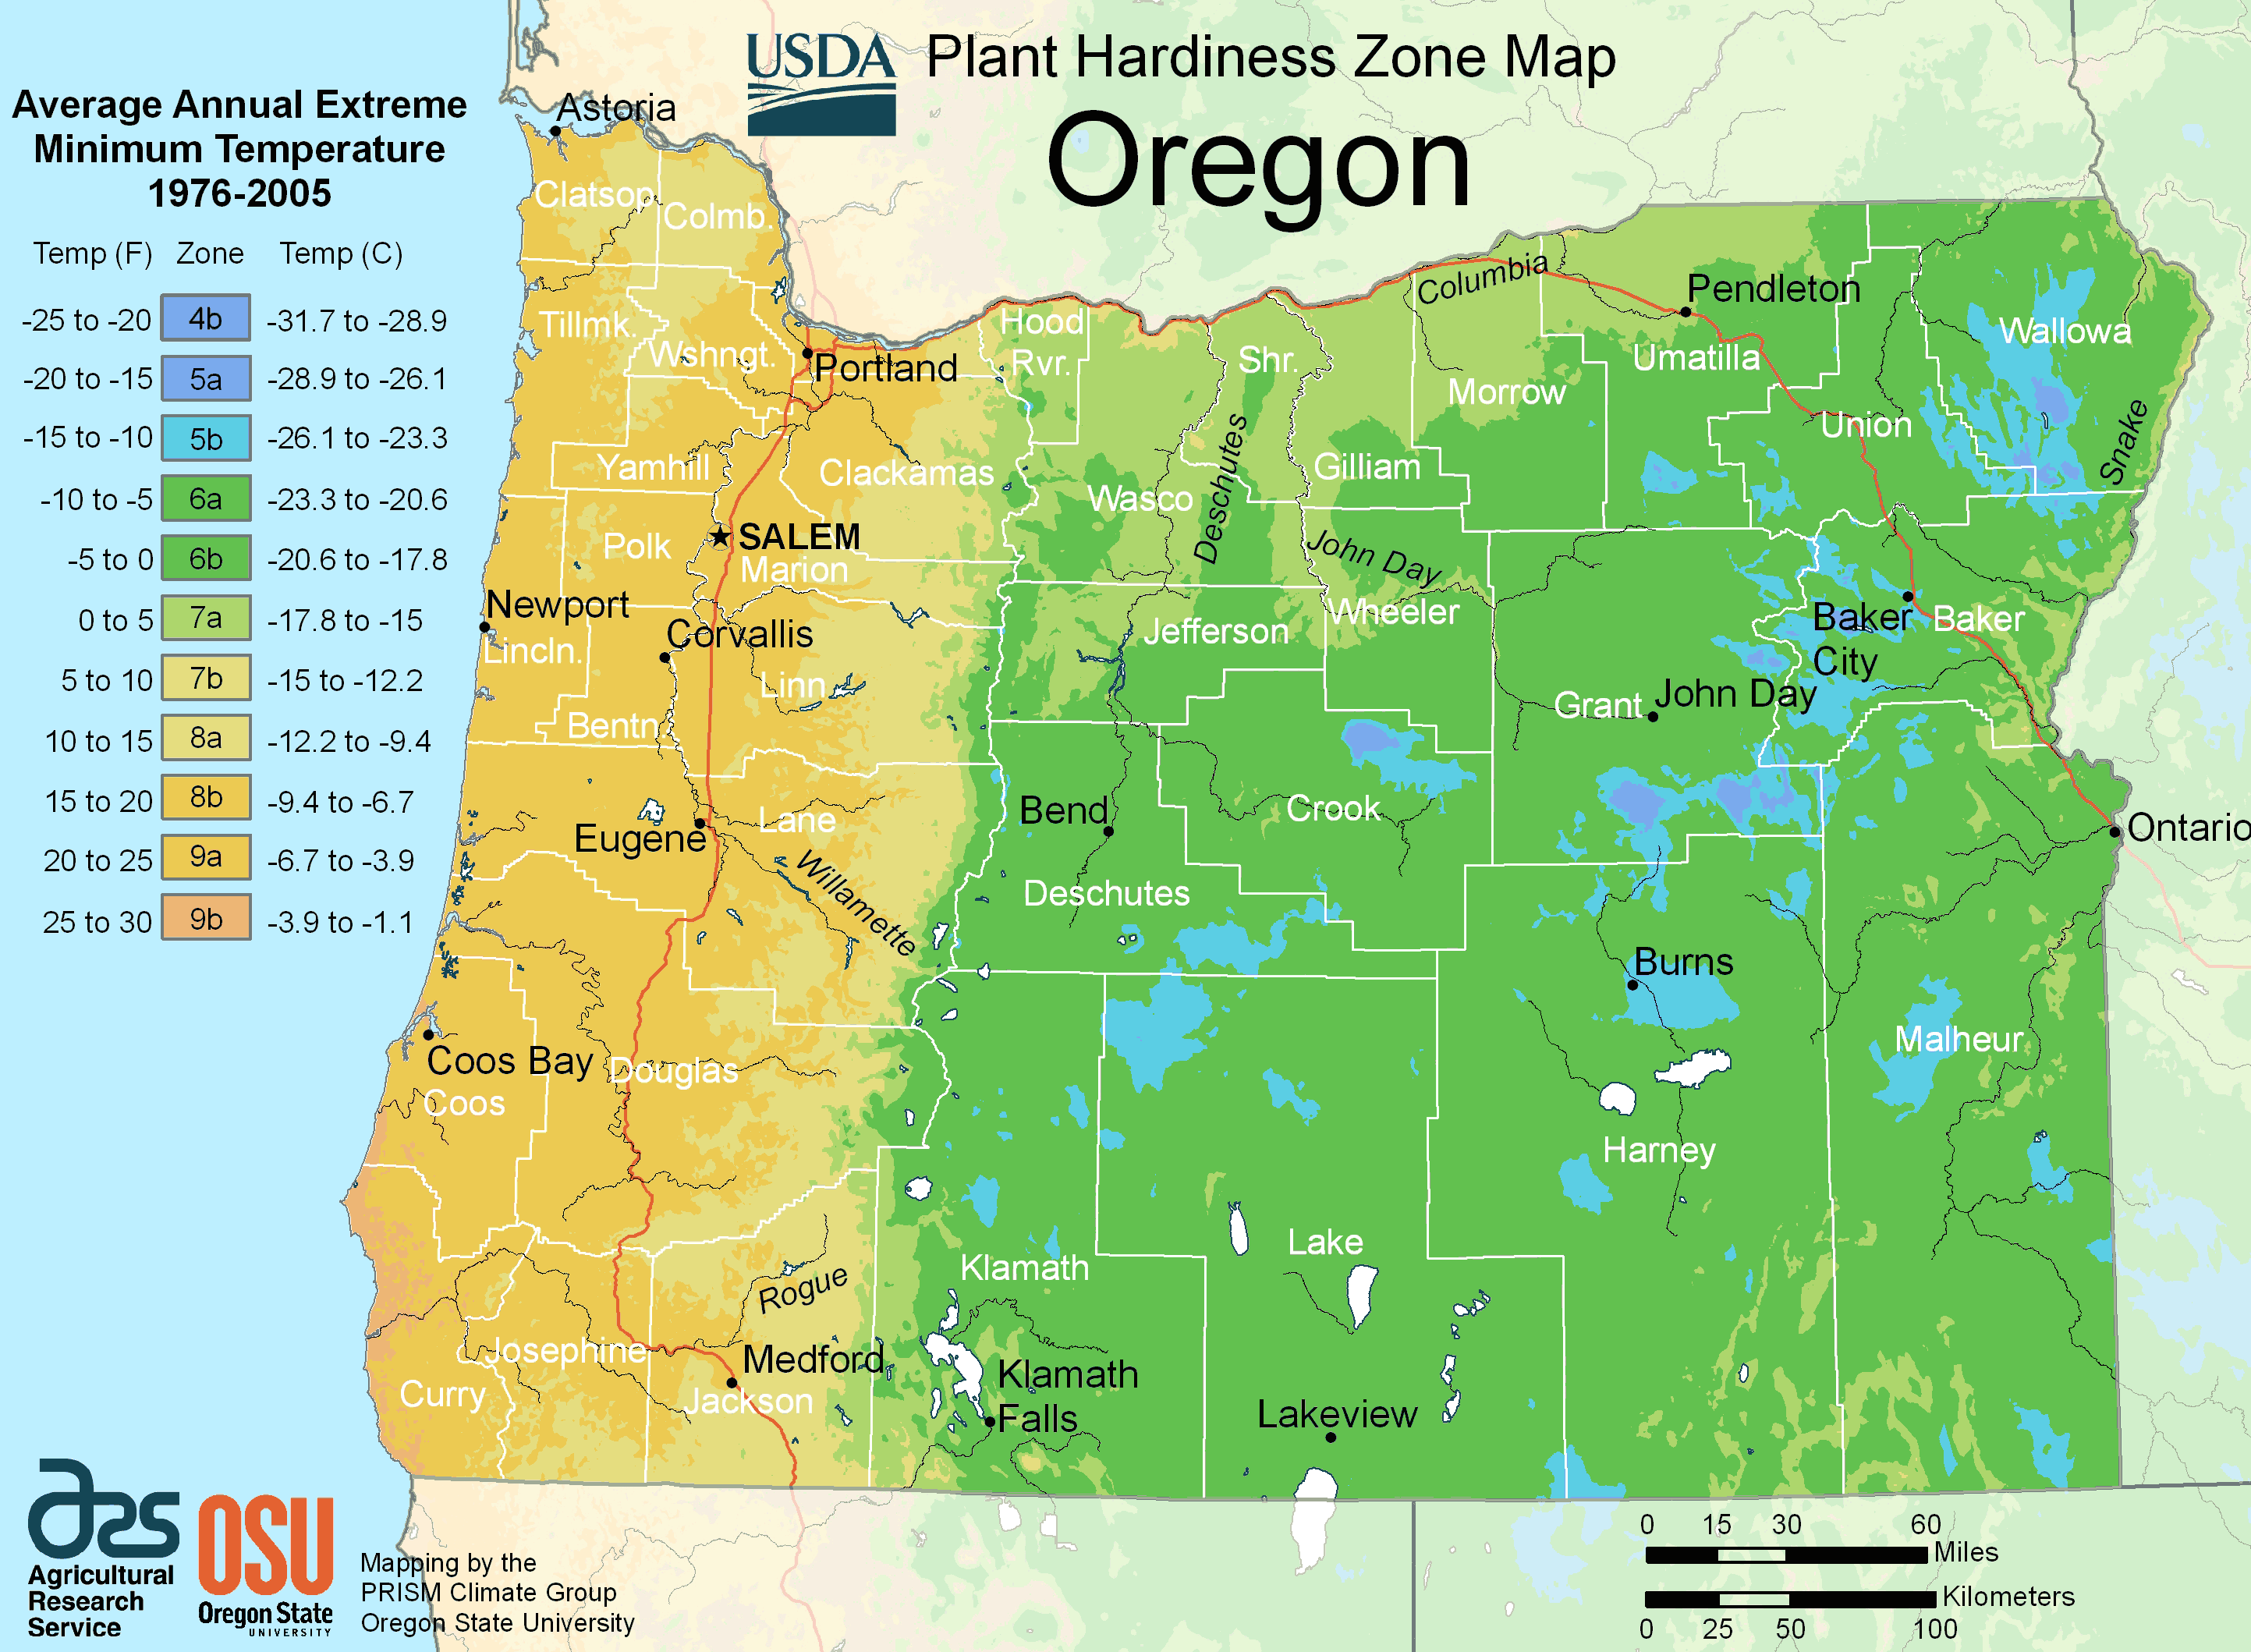 Oregon Alabama Plant Hardiness Zone Map Mapsofnet - Maps of oregon